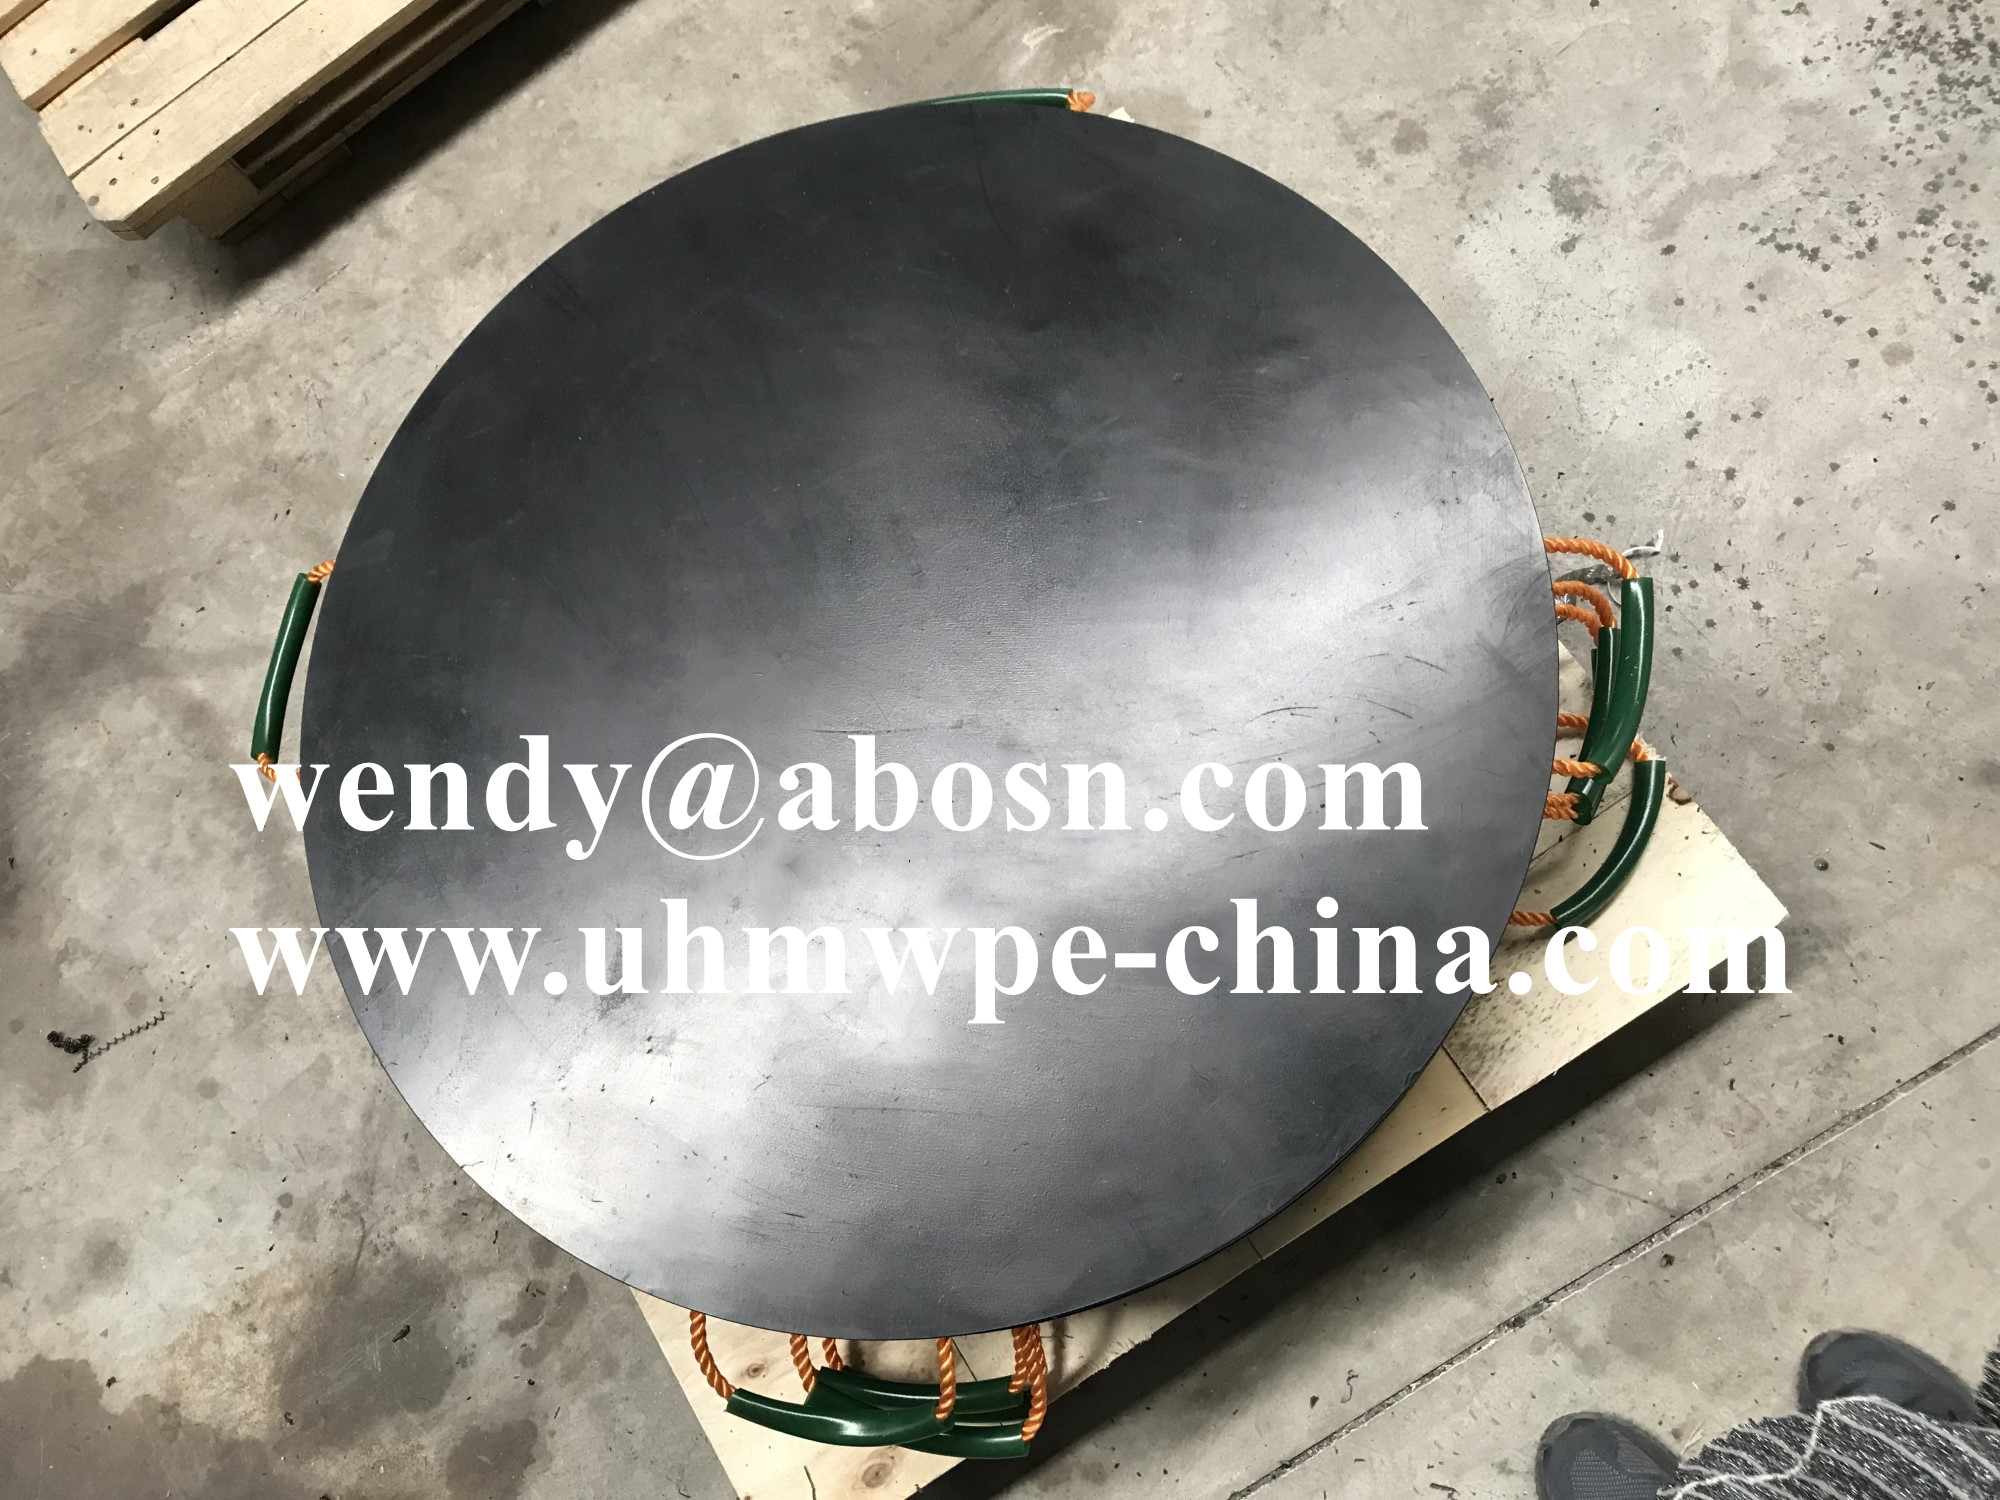 Round Crane Outrigger Pad for Sale